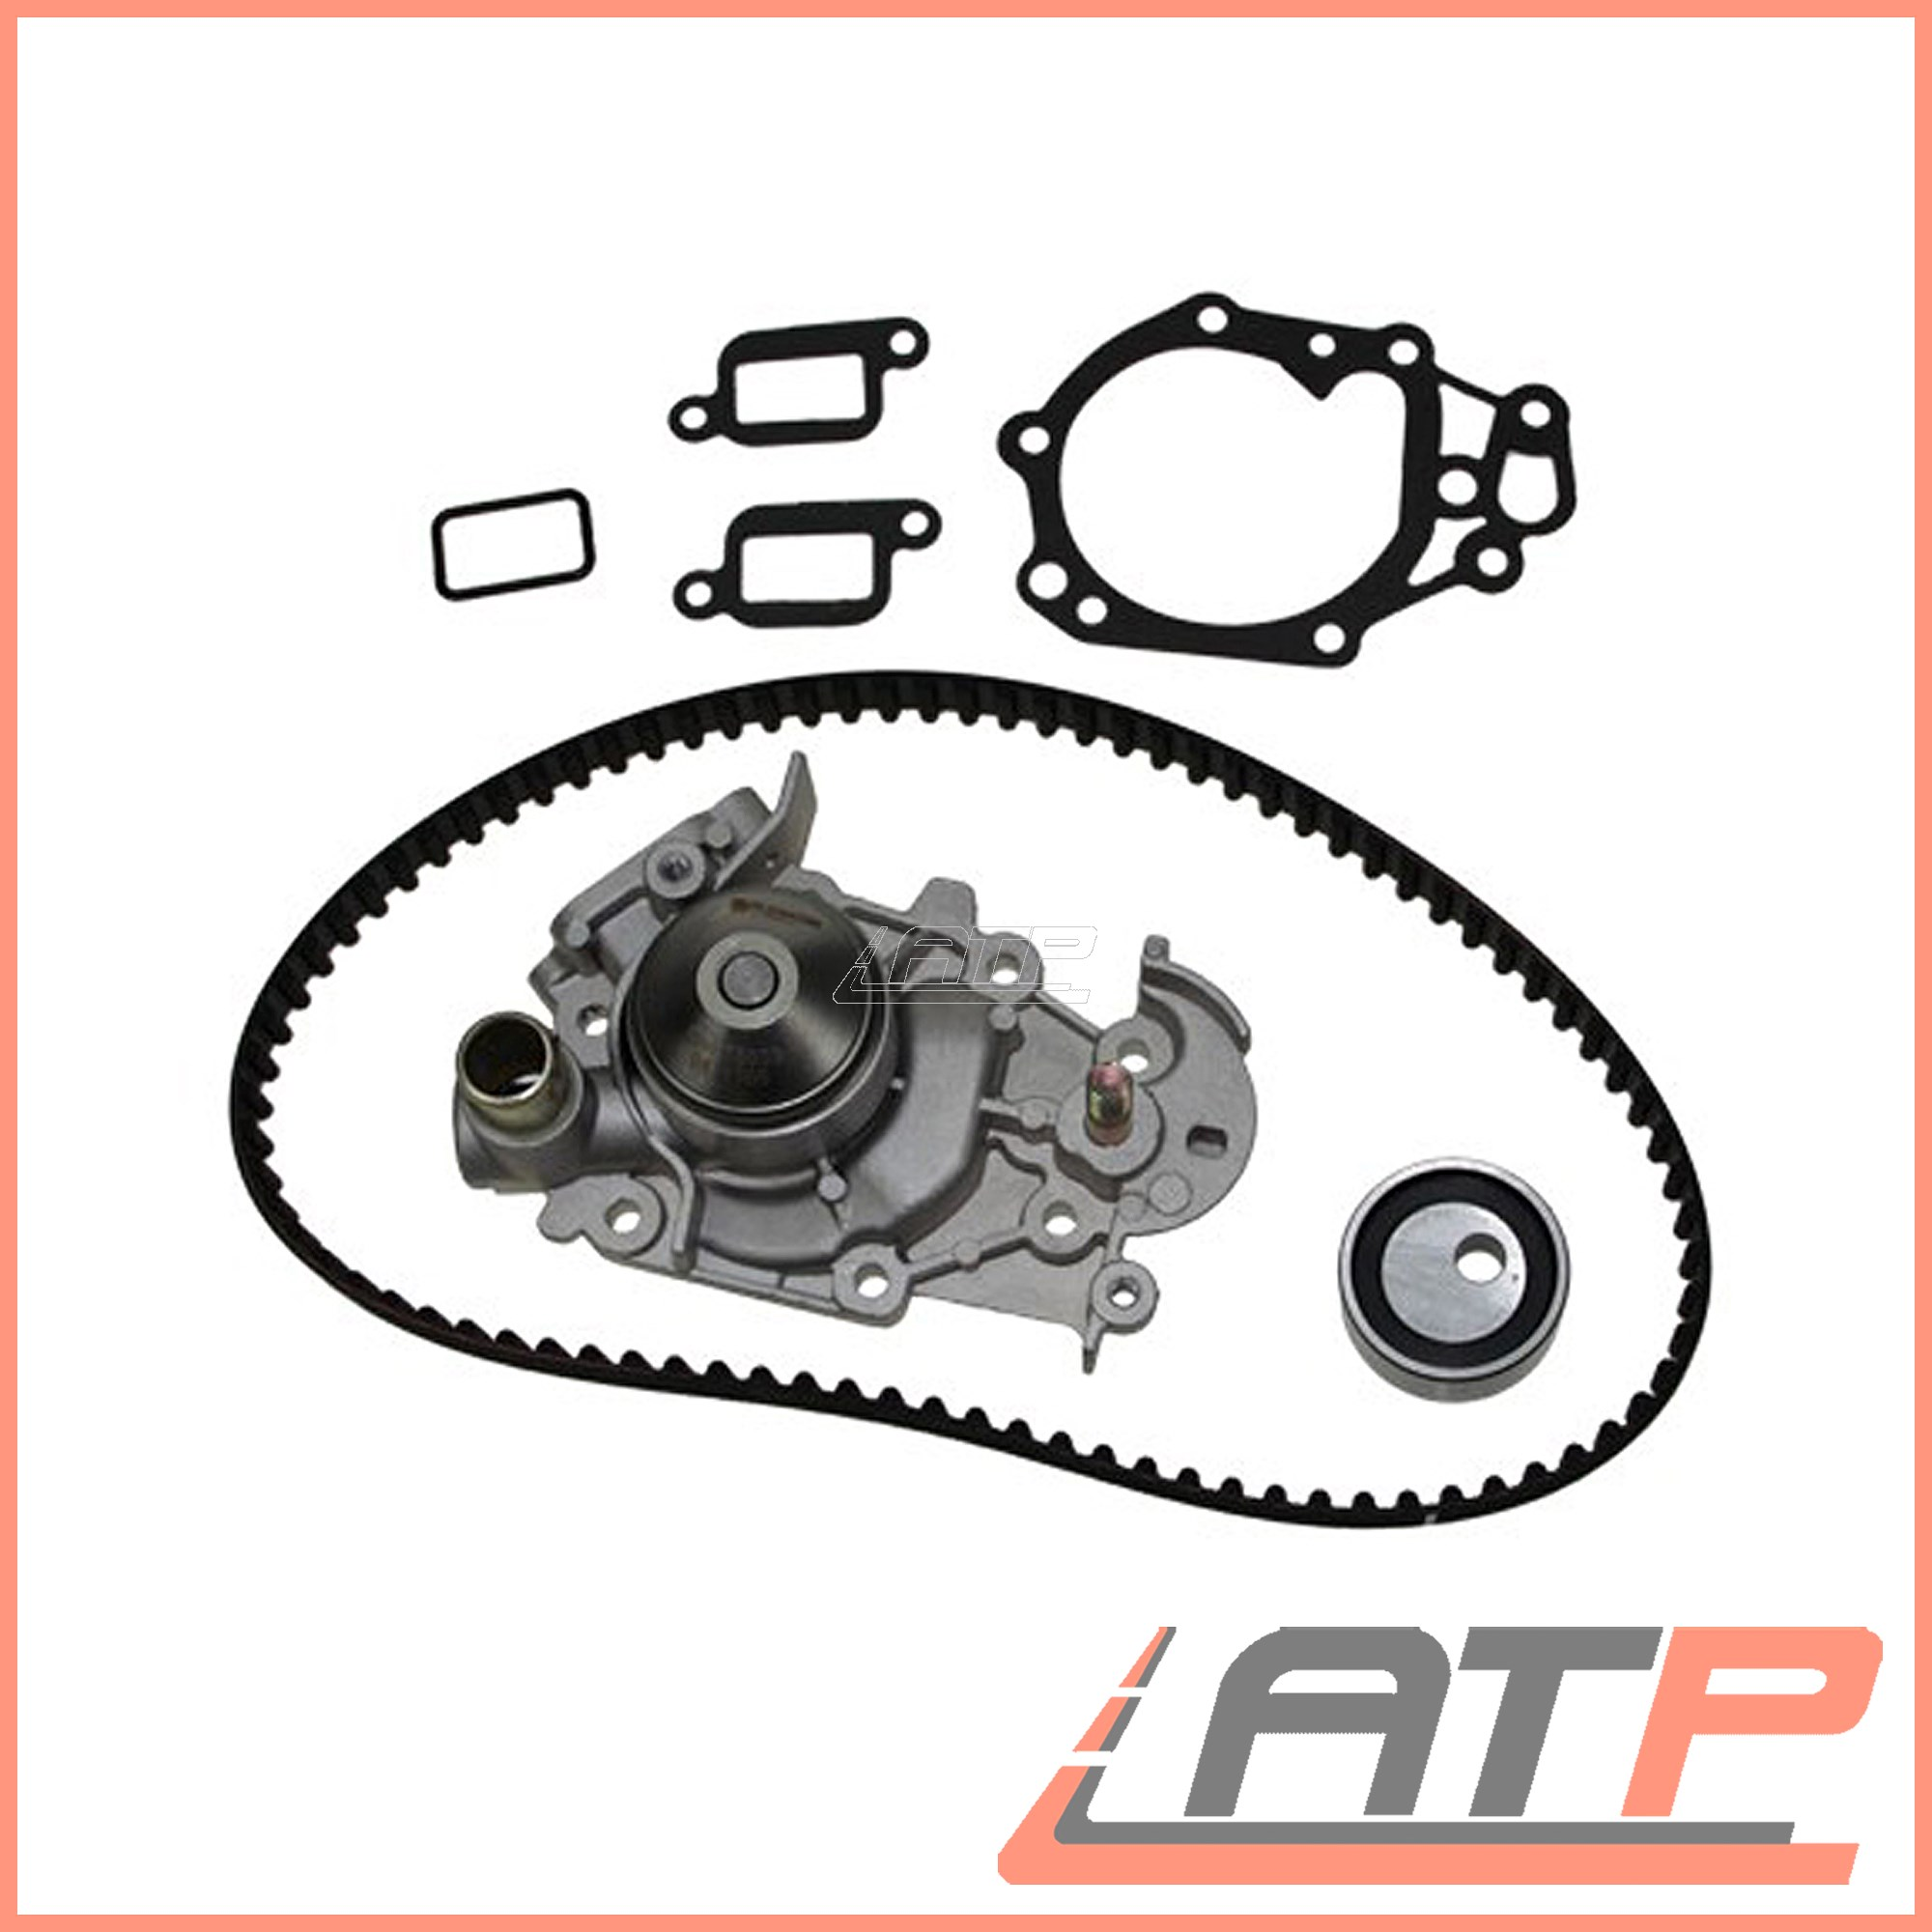 hight resolution of timing belt kit 3l glysantin g30 renault twingo mk 1 2 96 1 2 2 2 sur 4